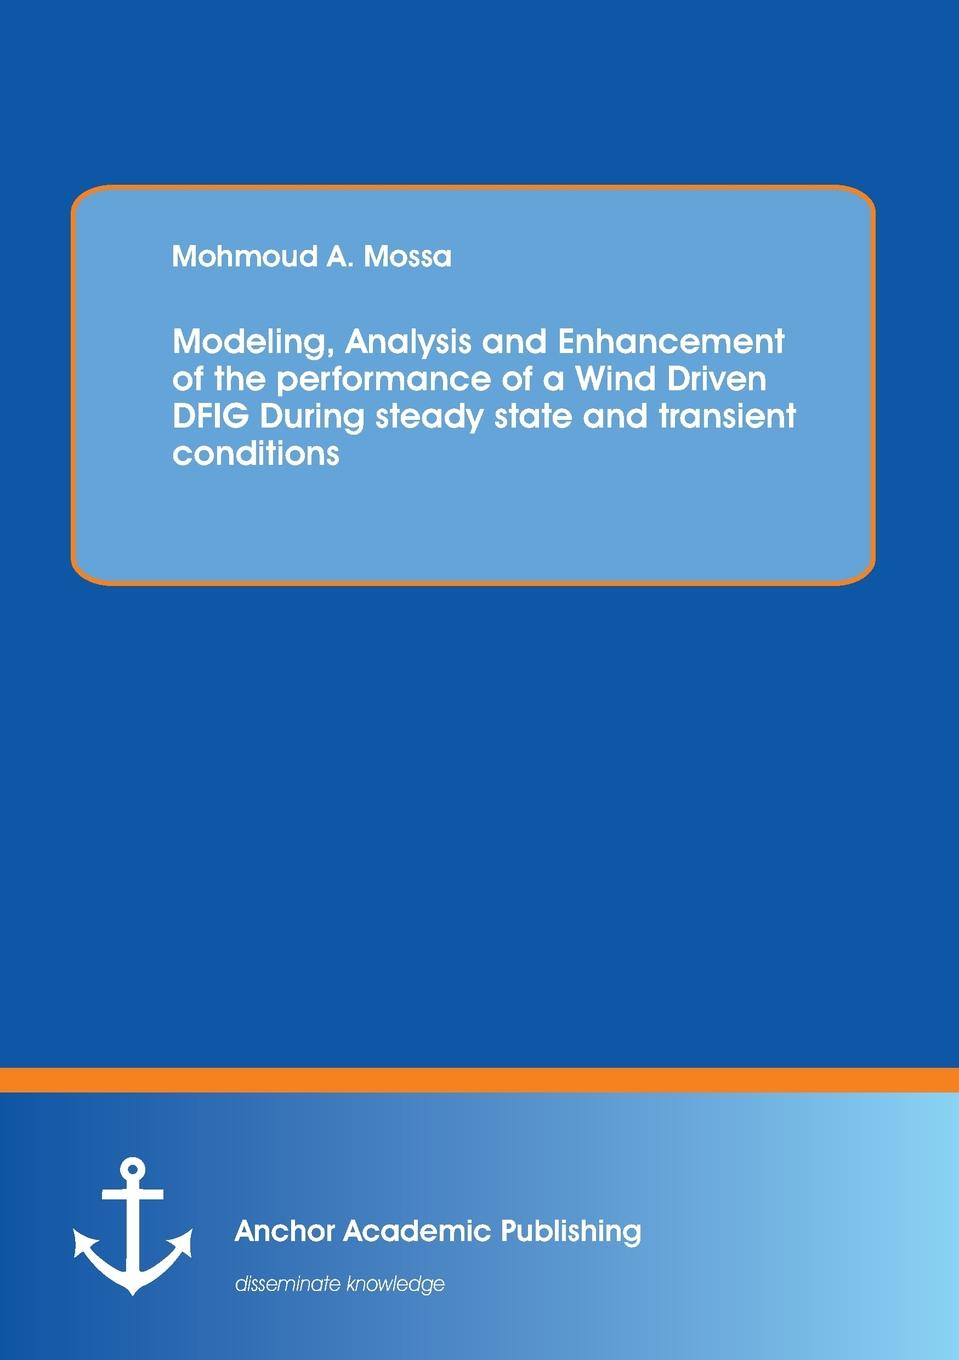 Mohmoud Mossa Modeling, Analysis and Enhancement of the performance of a Wind Driven DFIG During steady state and transient conditions 5 blades dc24v 500w aluminum alloy nylon wind power generator with wind controller for home ce iso tuv white wind generator